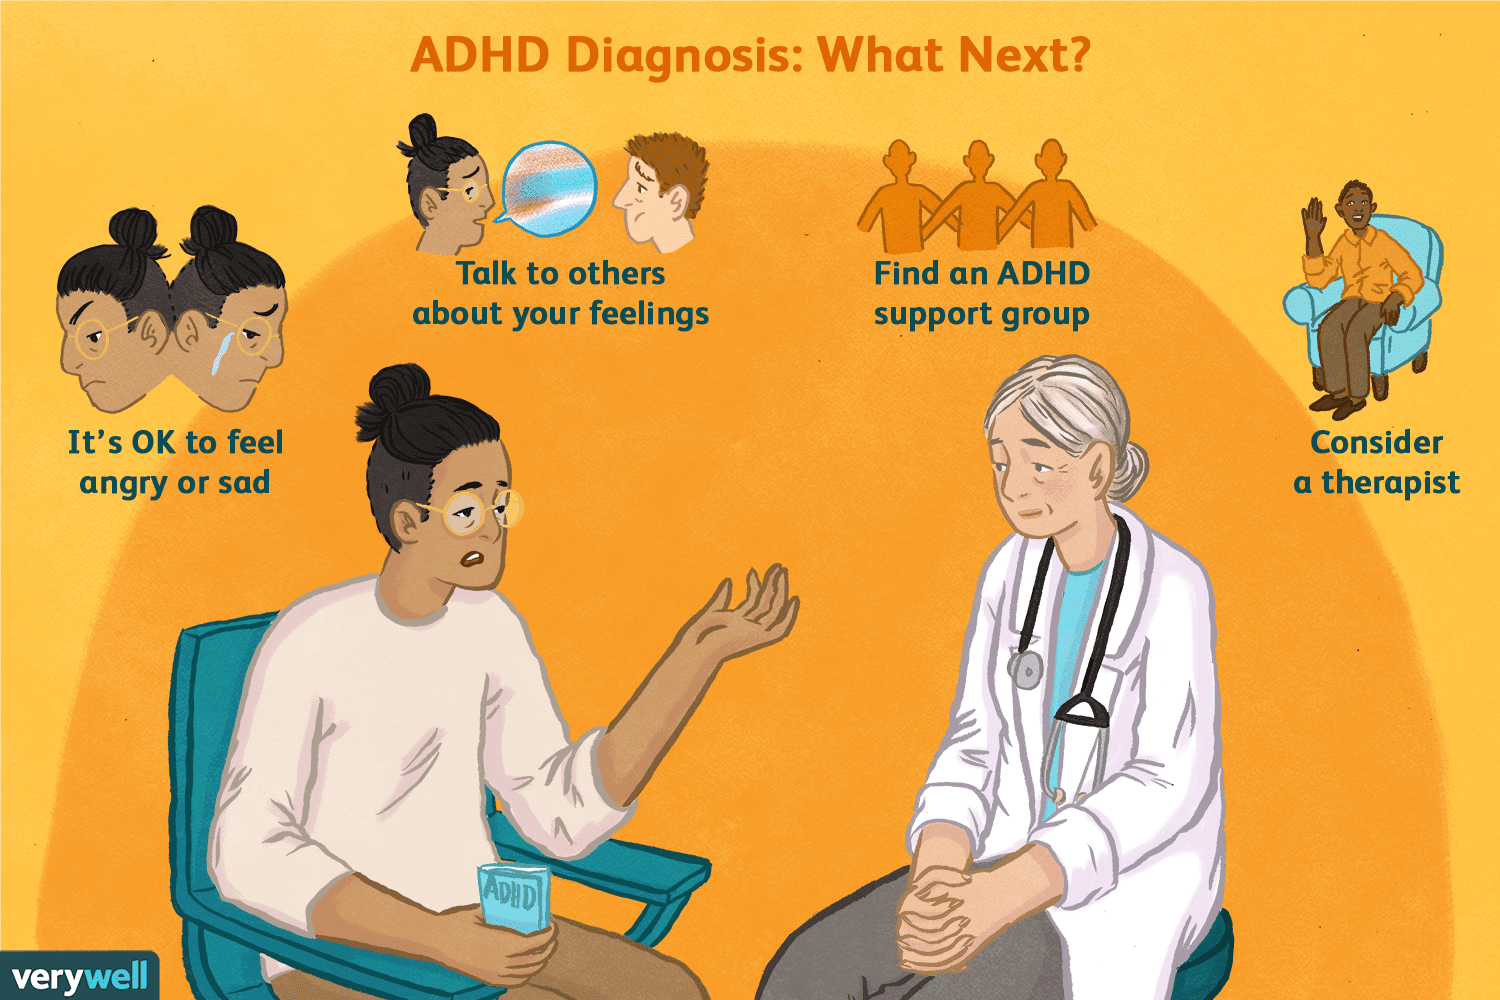 ca659a57c939 Strategies for Living Well With ADHD